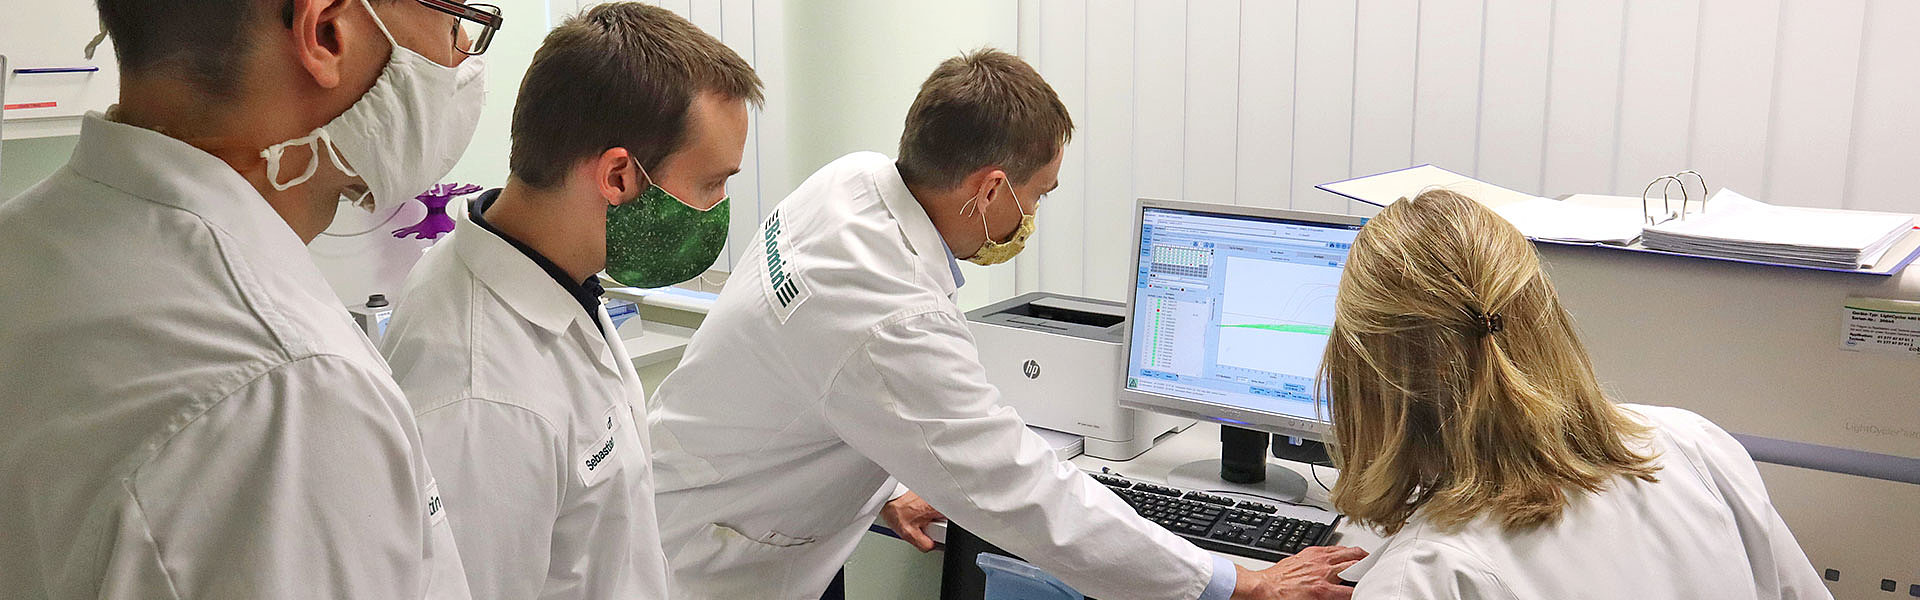 ERBER Group Supports University Medical Clinic Tulln in COVID-19 Testing